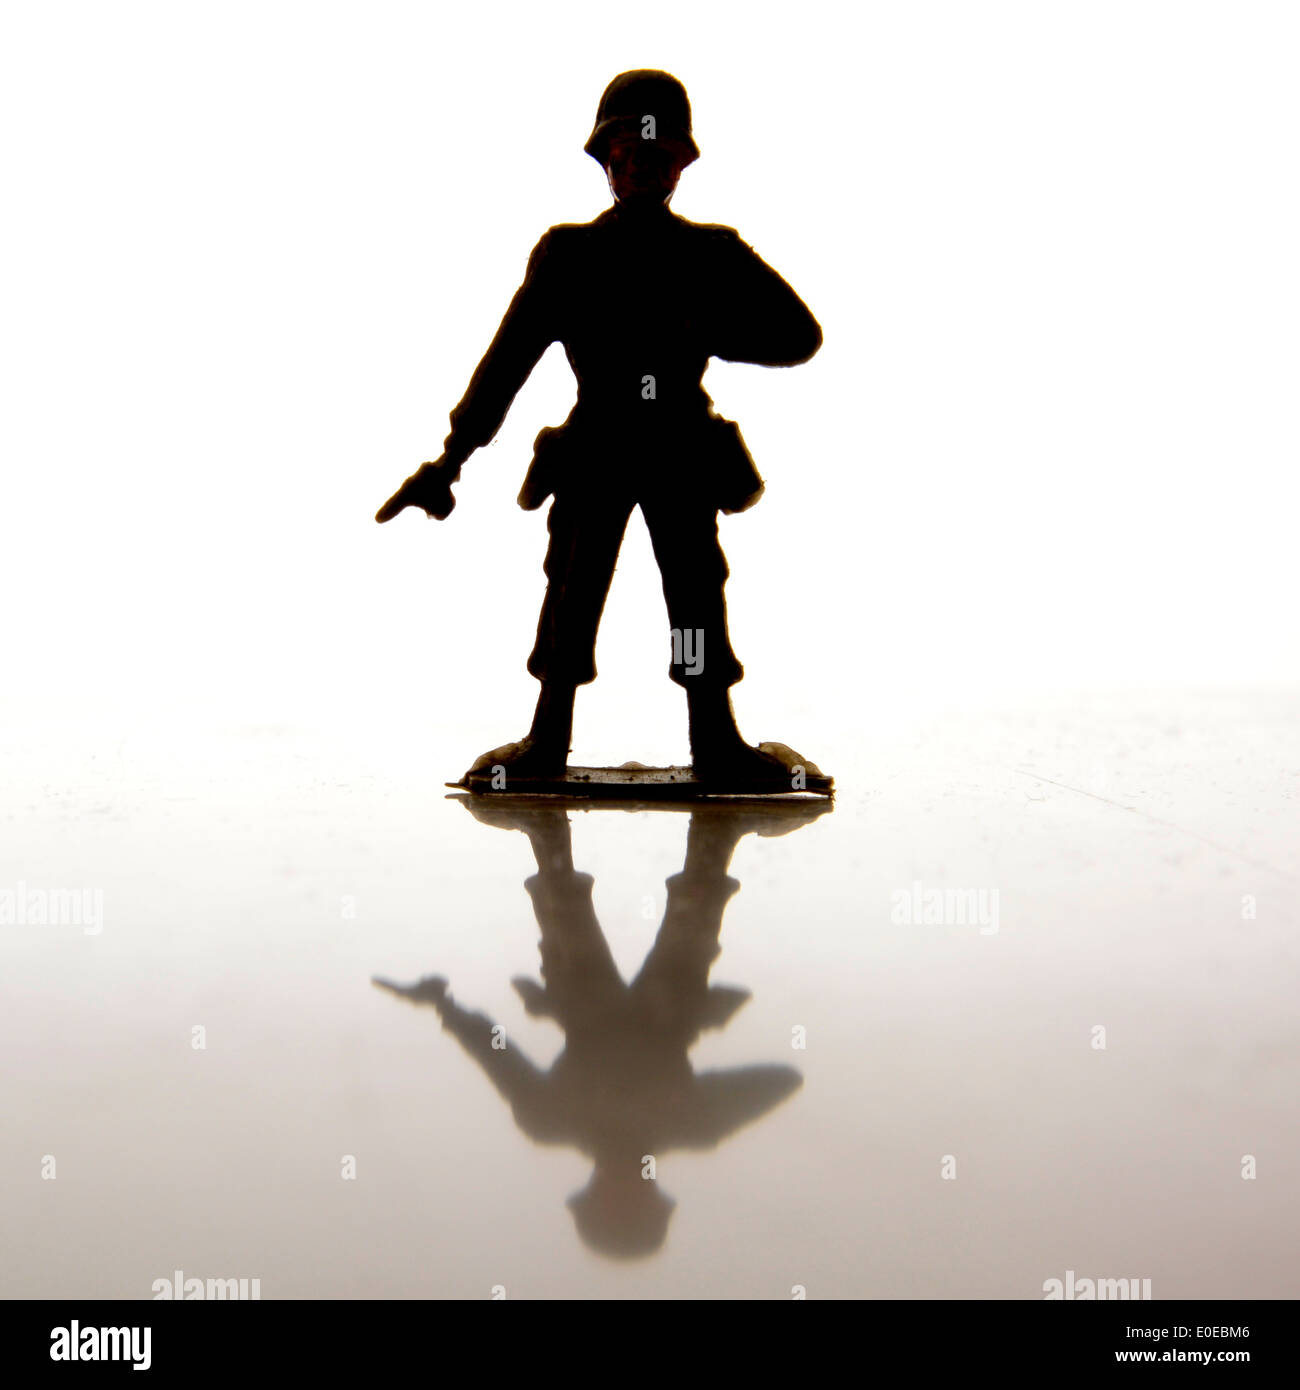 Toy soldier silhouette - Stock Image